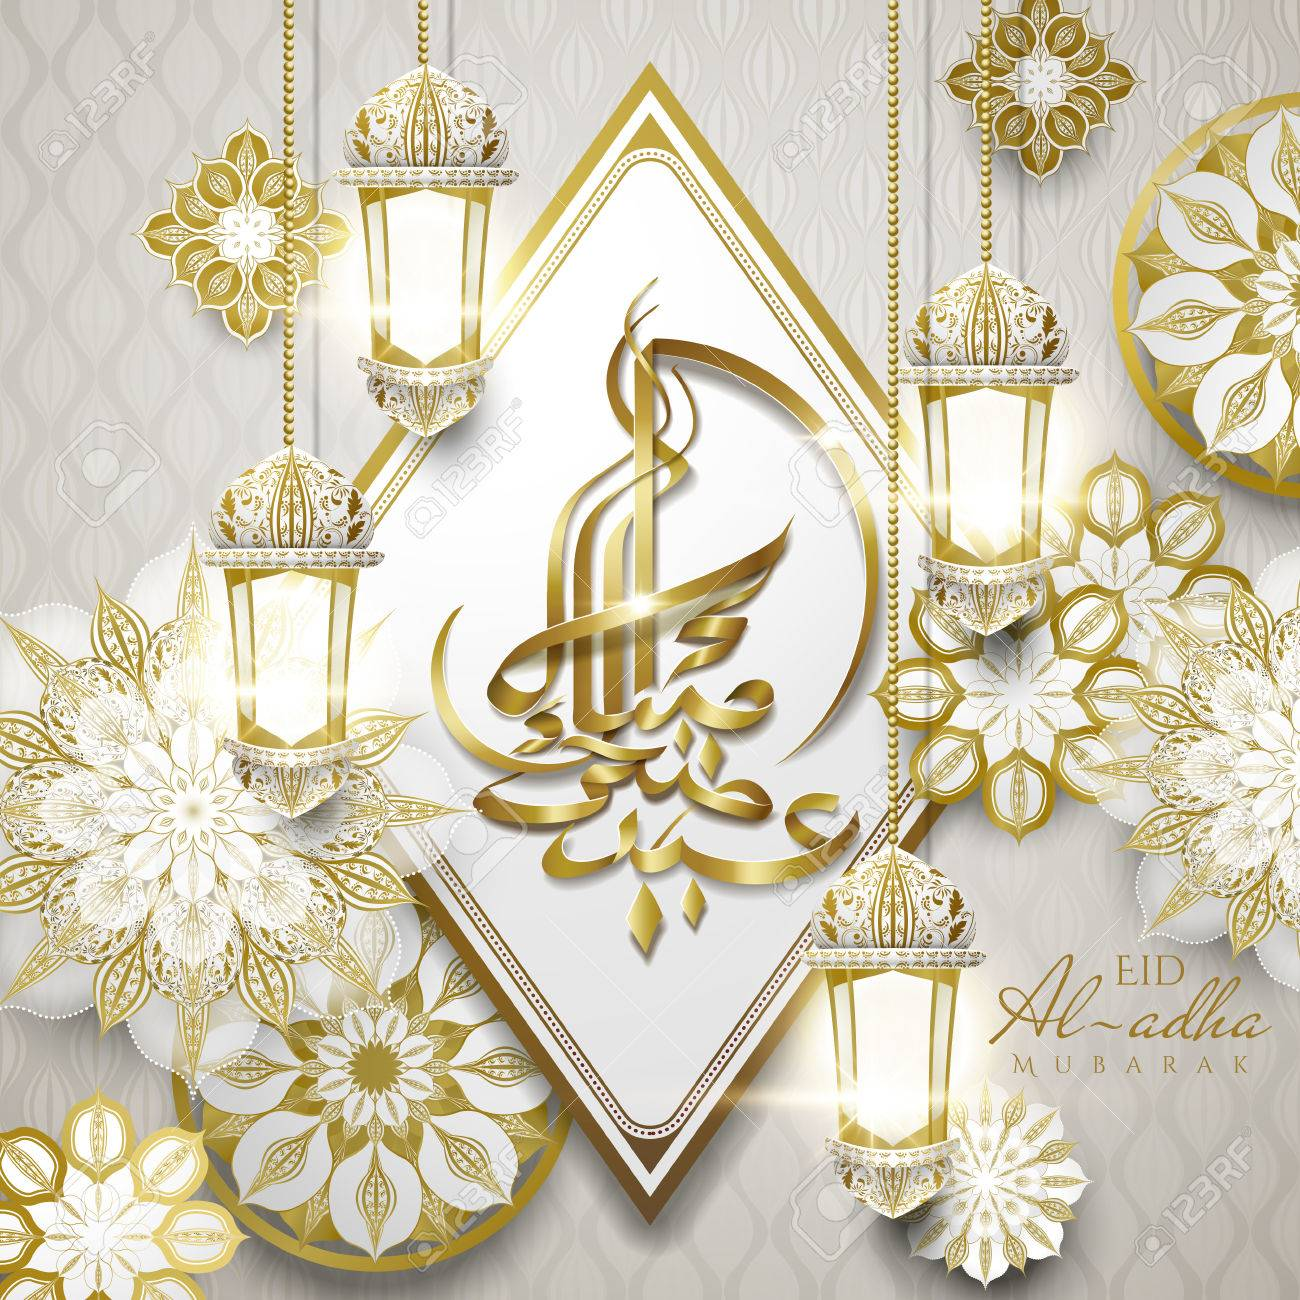 83873039-eid-al-adha-mubarak-calligraphy-happy-sacrifice-feast-in-arabic-calligraphy-with-exquisite-golden-fl.jpg